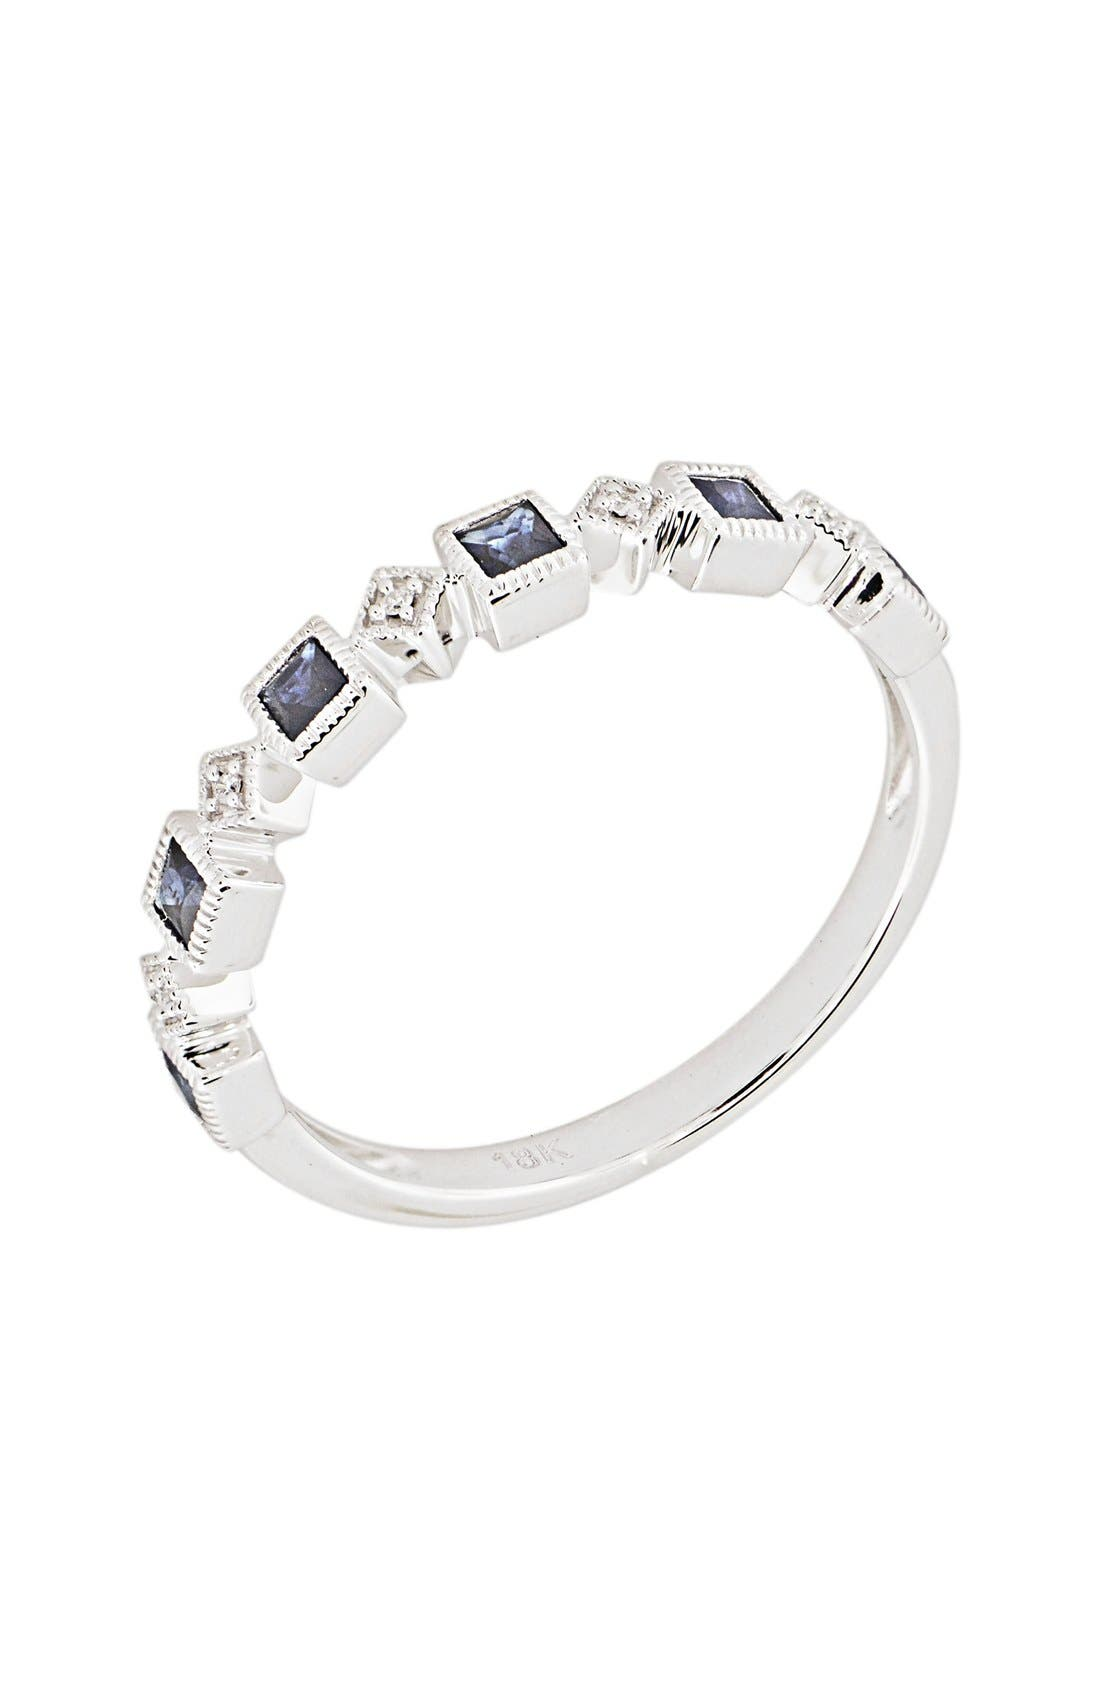 Stackable Diamond & Sapphire Band Ring,                         Main,                         color, 400